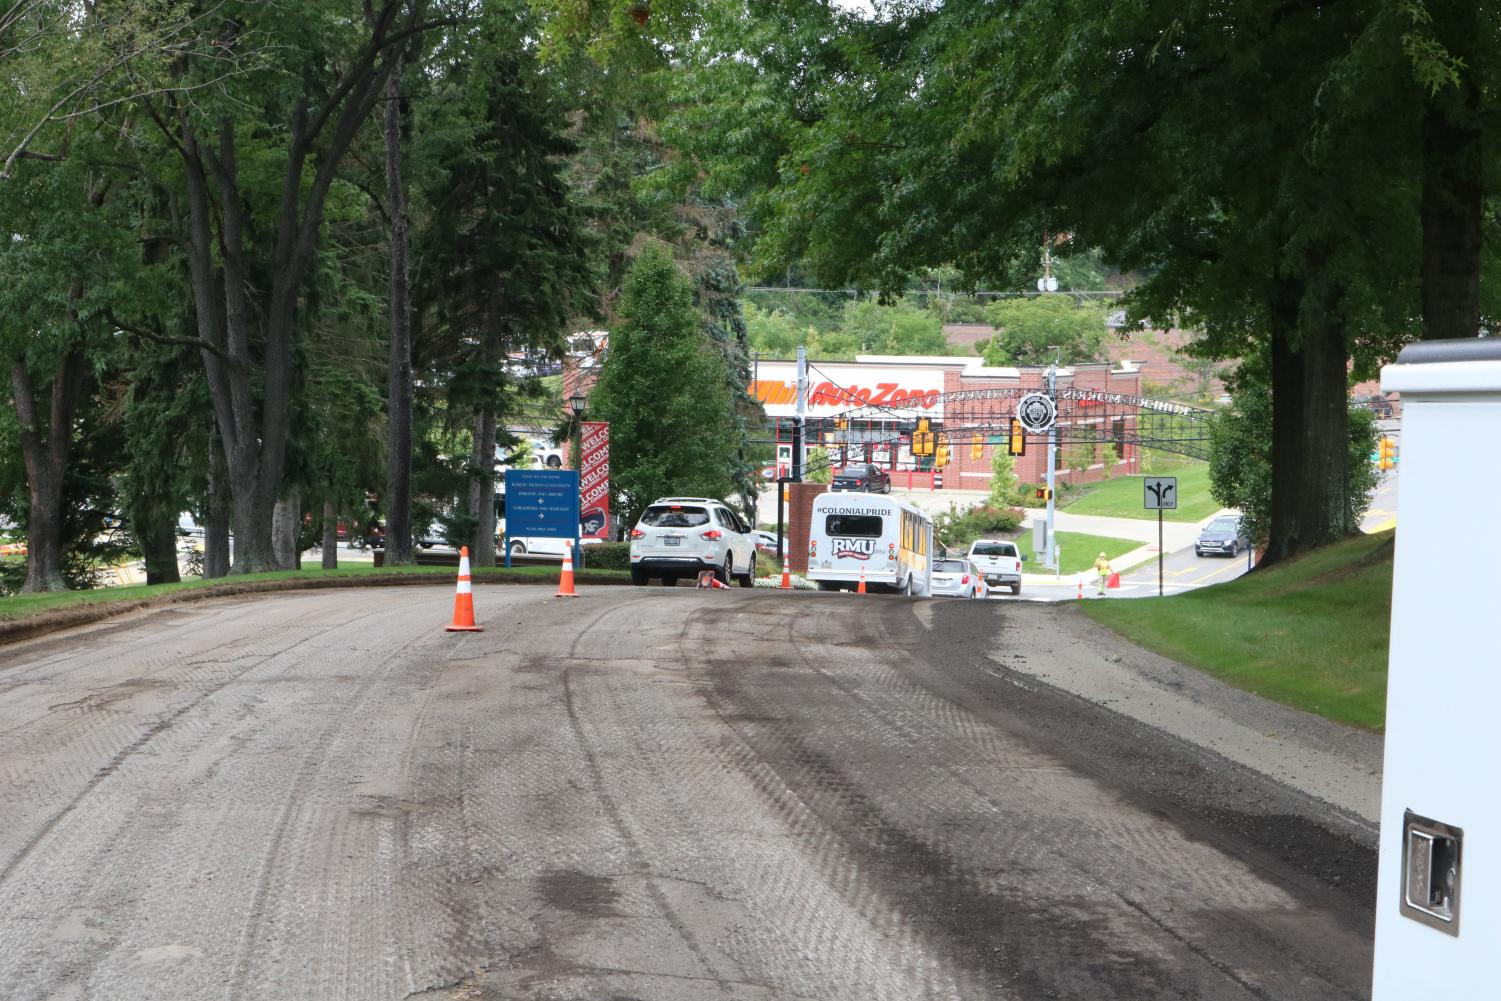 Construction crews milled the entrance to Robert Morris university on Monday, August 20, 2018.